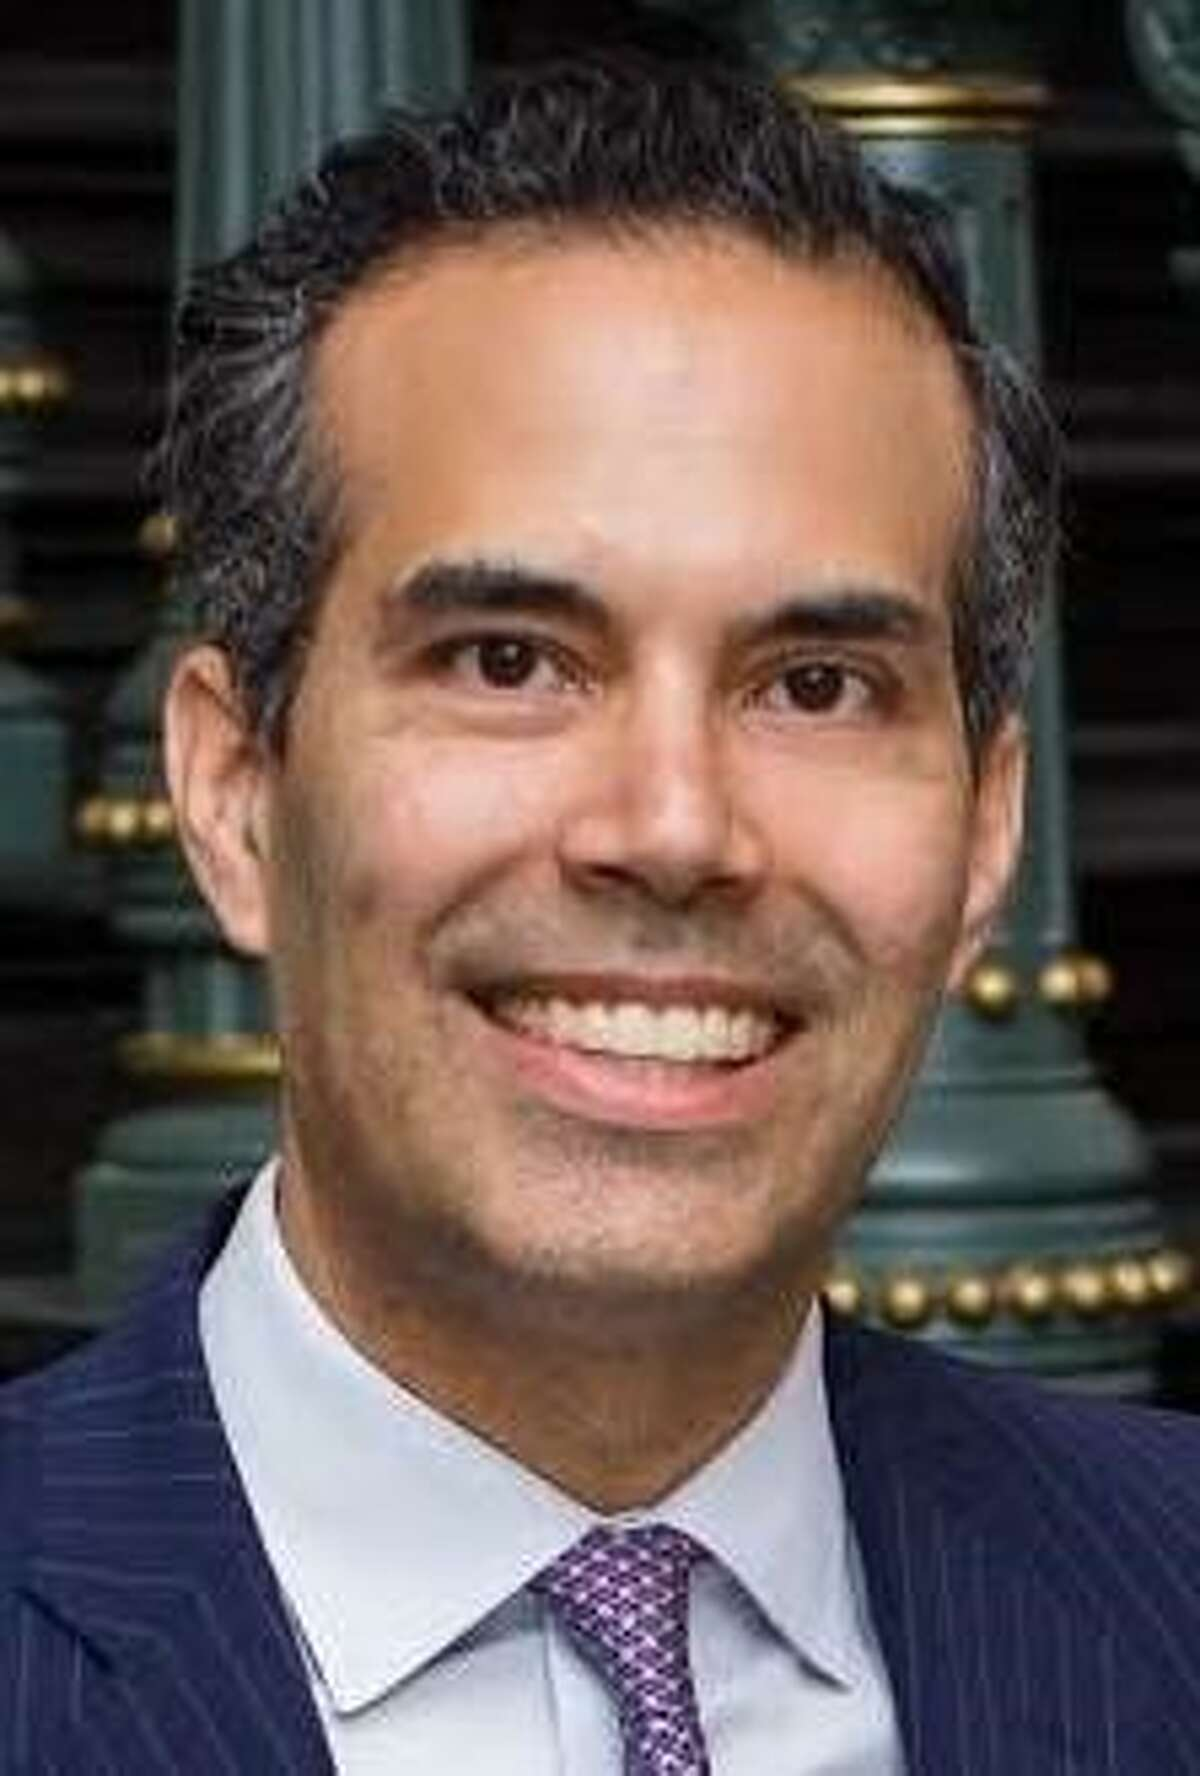 Texas Land Commissioner George P. Bush is considering a run for attorney general. A reader hopes the Bush family uses its political leverage if he runs.